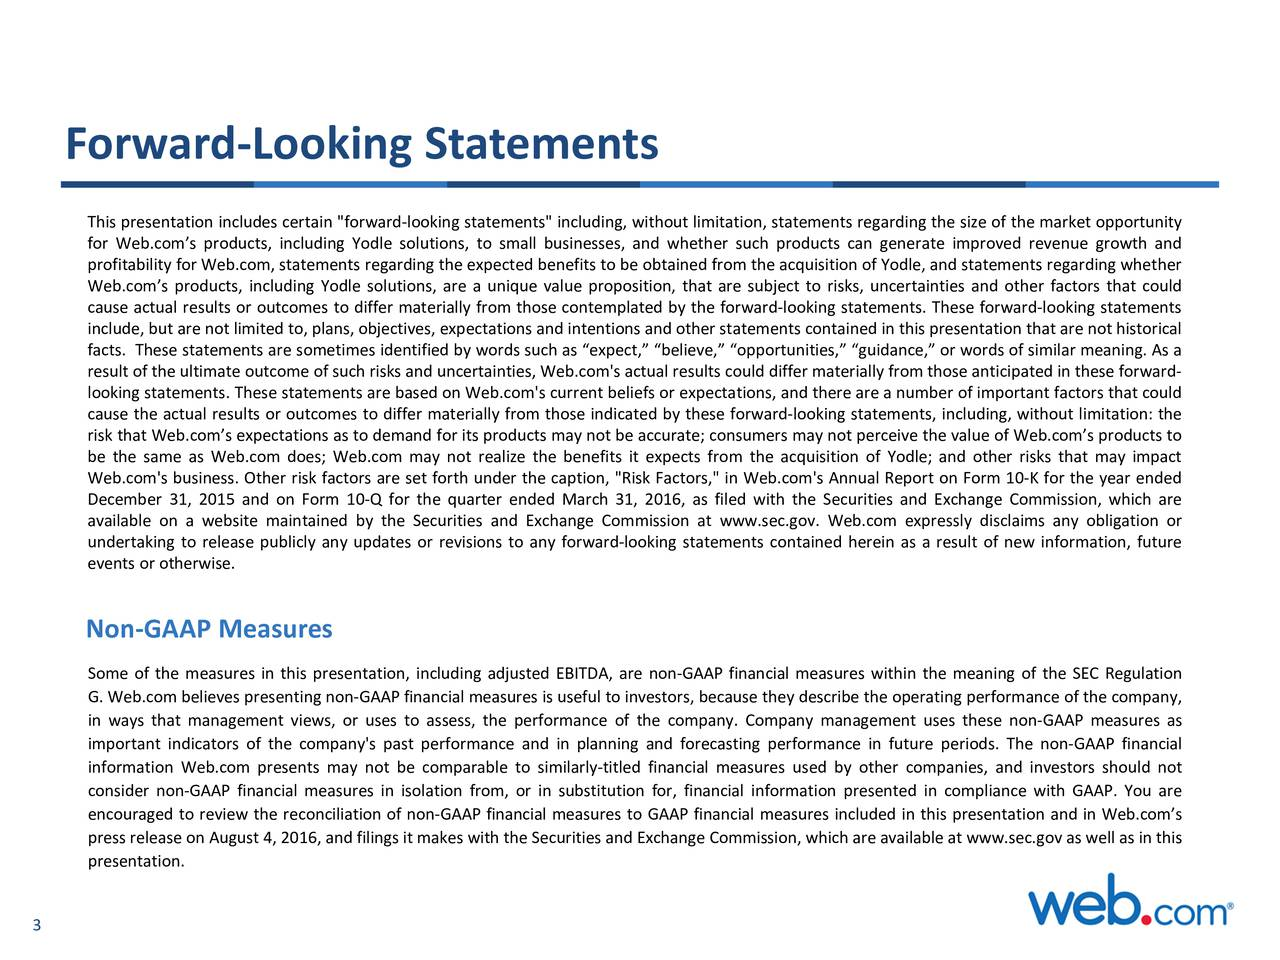 "This presentation includes certain ""forward-looking statements"" including, without limitation, statements regarding the size of the market opportunity for Web.coms products, including Yodle solutions, to small businesses, and whether such products can generate improved revenue growth and profitability for Web.com, statements regarding the expected benefits to be obtained from the acquisition of Yodle, and statements regarding whether Web.coms products, including Yodle solutions, are a unique value proposition, that are subject to risks, uncertainties and other factors that could cause actual results or outcomes to differ materially from those contemplated by the forward-looking statements. These forward-looking statements include, but are not limited to, plans, objectives, expectations and intentions and other statements contained in this presentation that are not historical facts. These statements are sometimes identified by words such as expect, believe, opportunities, guidance, or words of similar meaning. As a result of the ultimate outcome of such risks and uncertainties, Web.com's actual results could differ materially from those anticipated in these forward- looking statements. These statements are based on Web.com's current beliefs or expectations, and there are a number of important factors that could cause the actual results or outcomes to differ materially from those indicated by these forward-looking statements, including, without limitation: the risk that Web.coms expectations as to demand for its products may not be accurate; consumers may not perceive the value of Web.coms products to be the same as Web.com does; Web.com may not realize the benefits it expects from the acquisition of Yodle; and other risks that may impact Web.com's business. Other risk factors are set forth under the caption, ""Risk Factors,"" in Web.com's Annual Report on Form 10-K for the year ended December 31, 2015 and on Form 10-Q for the quarter ended March 31, 2016, as filed with the Securities and Exchange Commission, which are available on a website maintained by the Securities and Exchange Commission at www.sec.gov. Web.com expressly disclaims any obligation or undertaking to release publicly any updates or revisions to any forward-looking statements contained herein as a result of new information, future events or otherwise. Non-GAAP Measures Some of the measures in this presentation, including adjusted EBITDA, are non-GAAP financial measures within the meaning of the SEC Regulation G. Web.com believes presenting non-GAAP financial measures is useful to investors, because they describe the operating performance of the company, in ways that management views, or uses to assess, the performance of the company. Company management uses these non-GAAP measures as important indicators of the company's past performance and in planning and forecasting performance in future periods. The non-GAAP financial information Web.com presents may not be comparable to similarly-titled financial measures used by other companies, and investors should not consider non-GAAP financial measures in isolation from, or in substitution for, financial information presented in compliance with GAAP. You are encouraged to review the reconciliation of non-GAAP financial measures to GAAP financial measures included in this presentation and in Web.coms press release on August 4, 2016, and filings it makes with the Securities and Exchange Commission, which are available at www.sec.gov as well as in this presentation. 3"